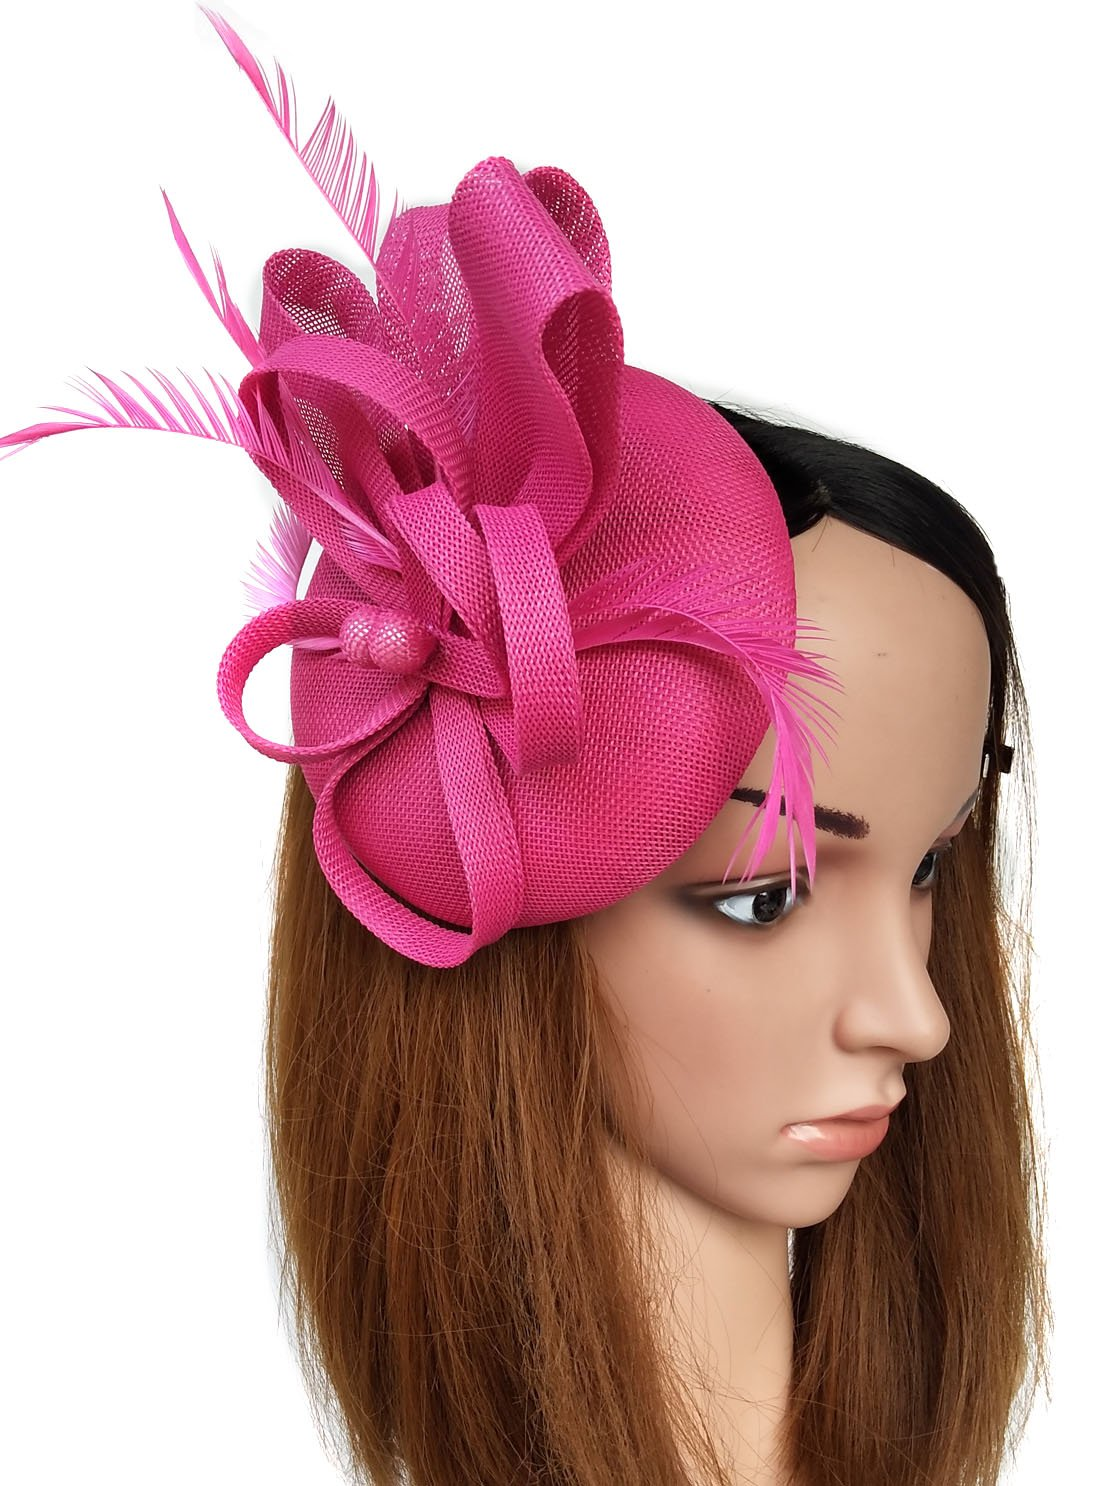 Coolwife Fascinators Sinamay Hat Womens Feather Pillbox Derby Tea Party Hat (Rose Red)